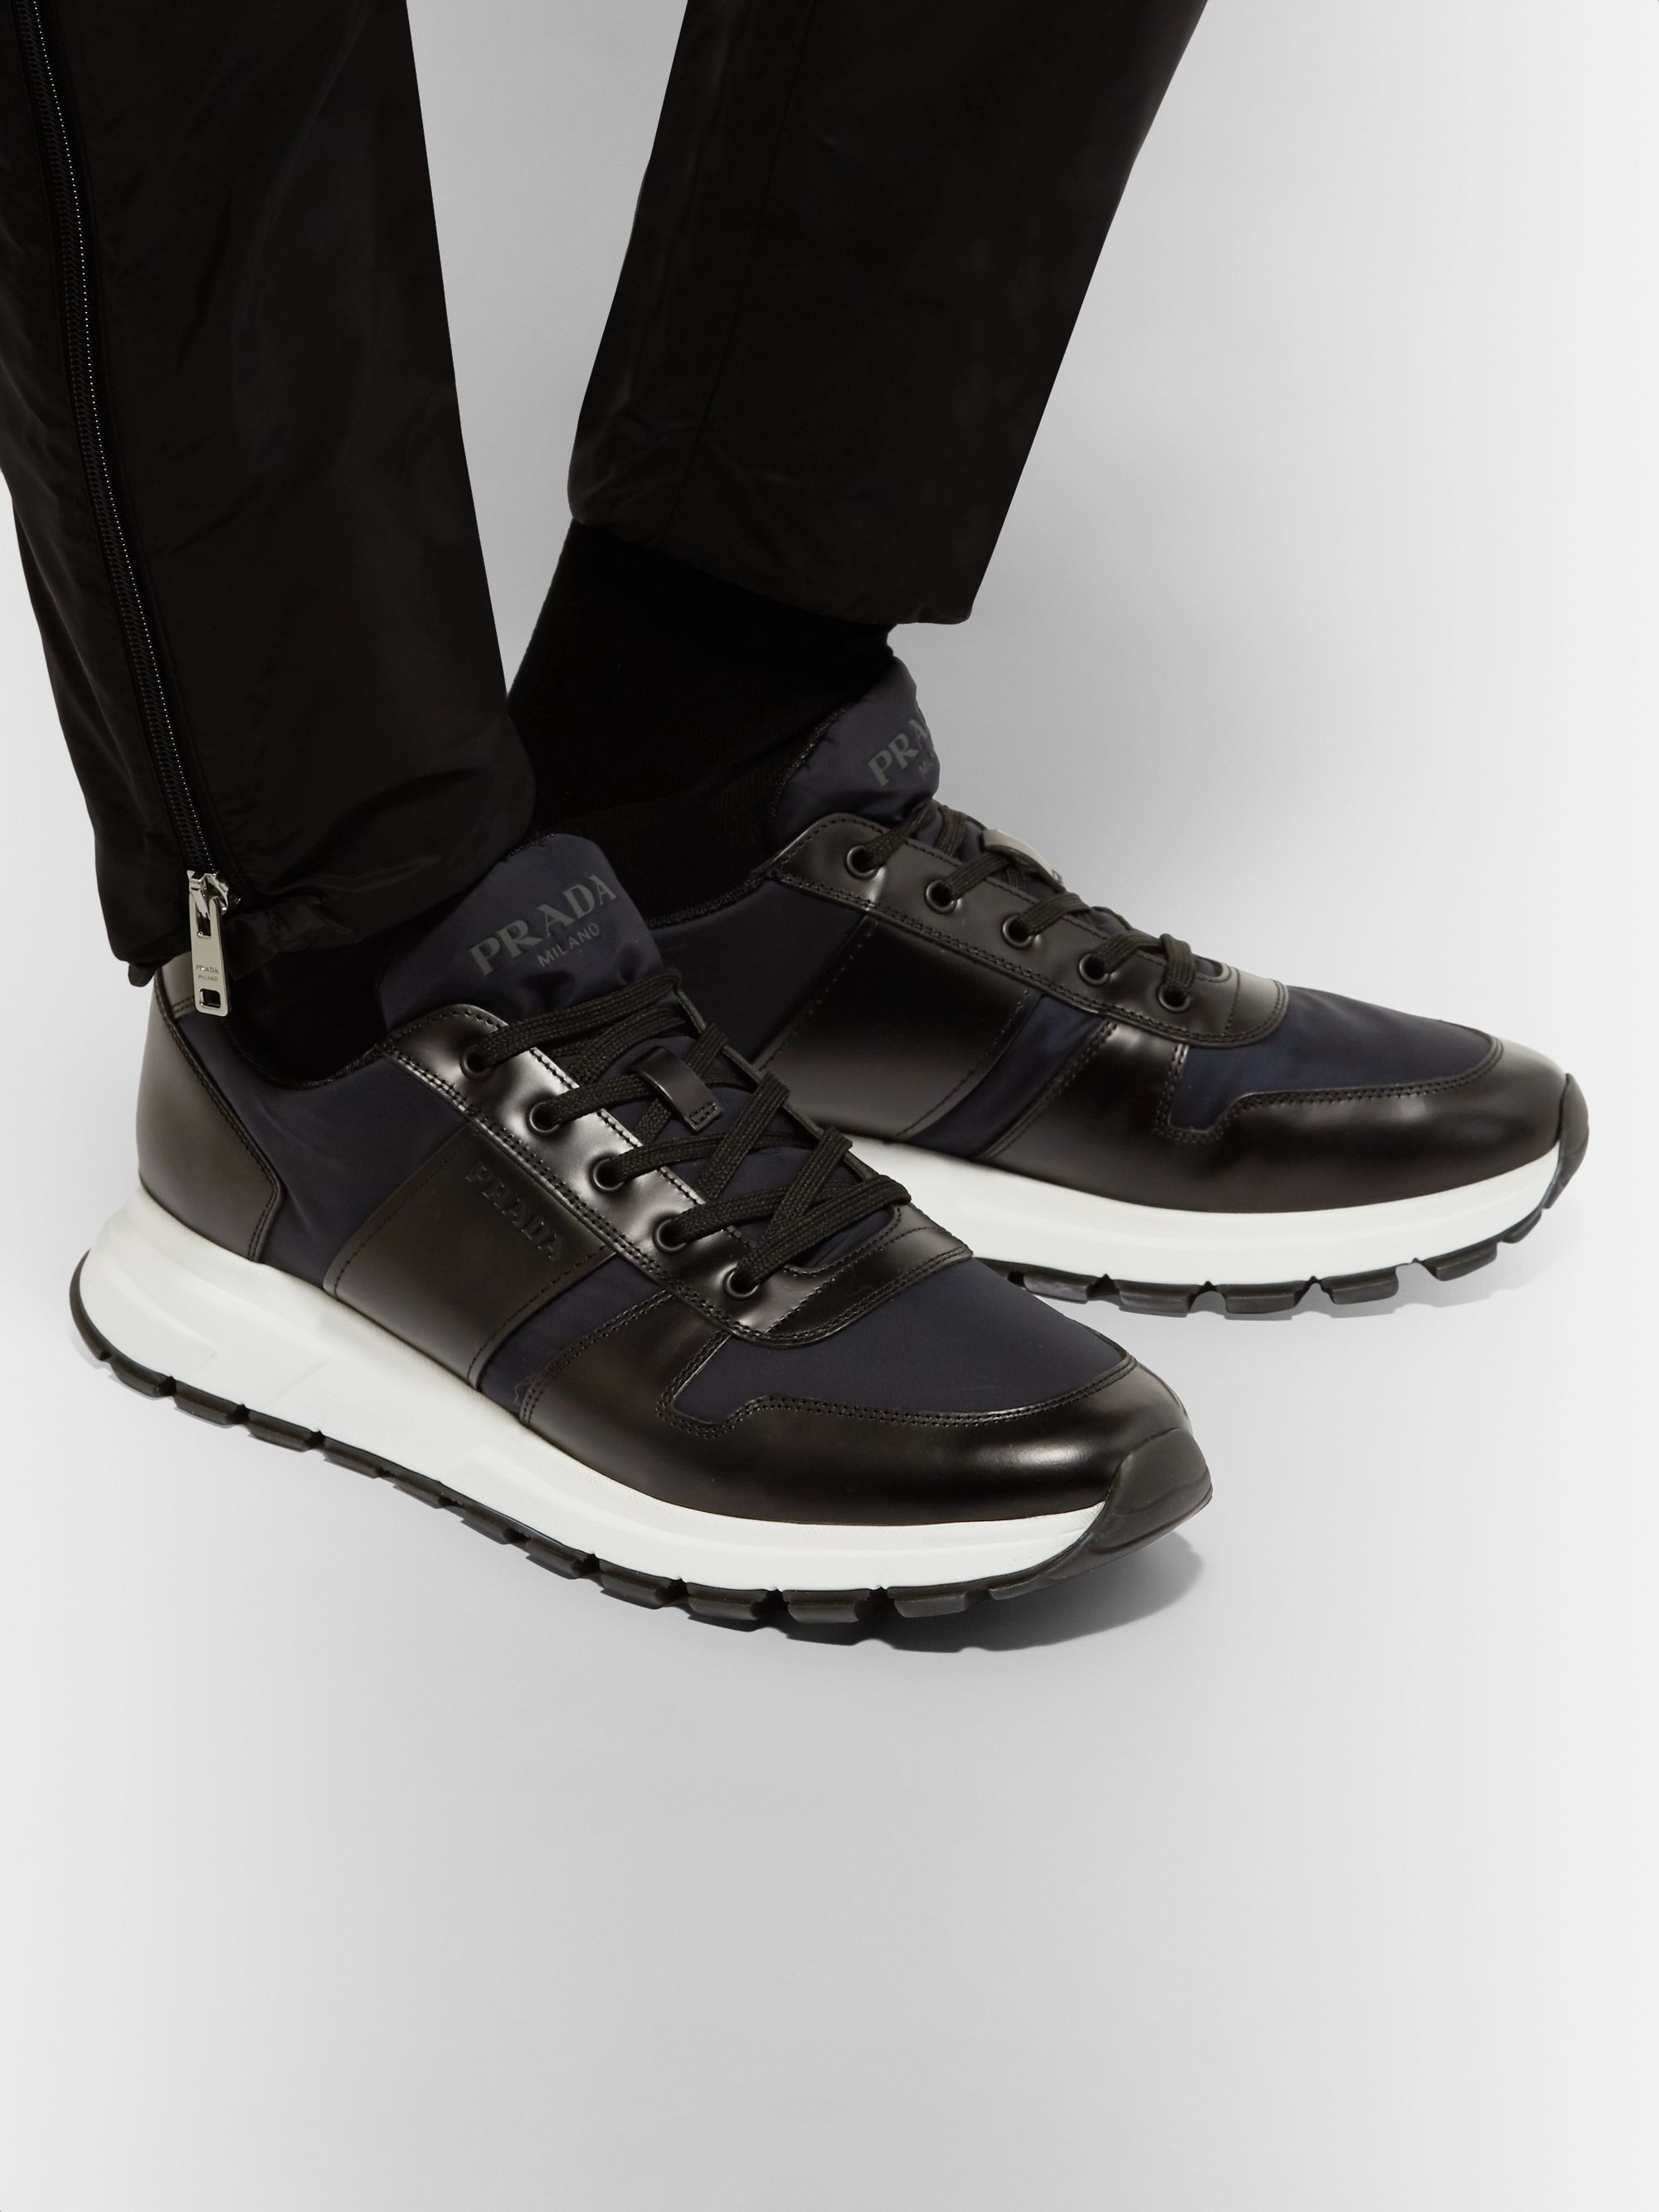 Match Race Leather Trimmed Nylon Sneakers